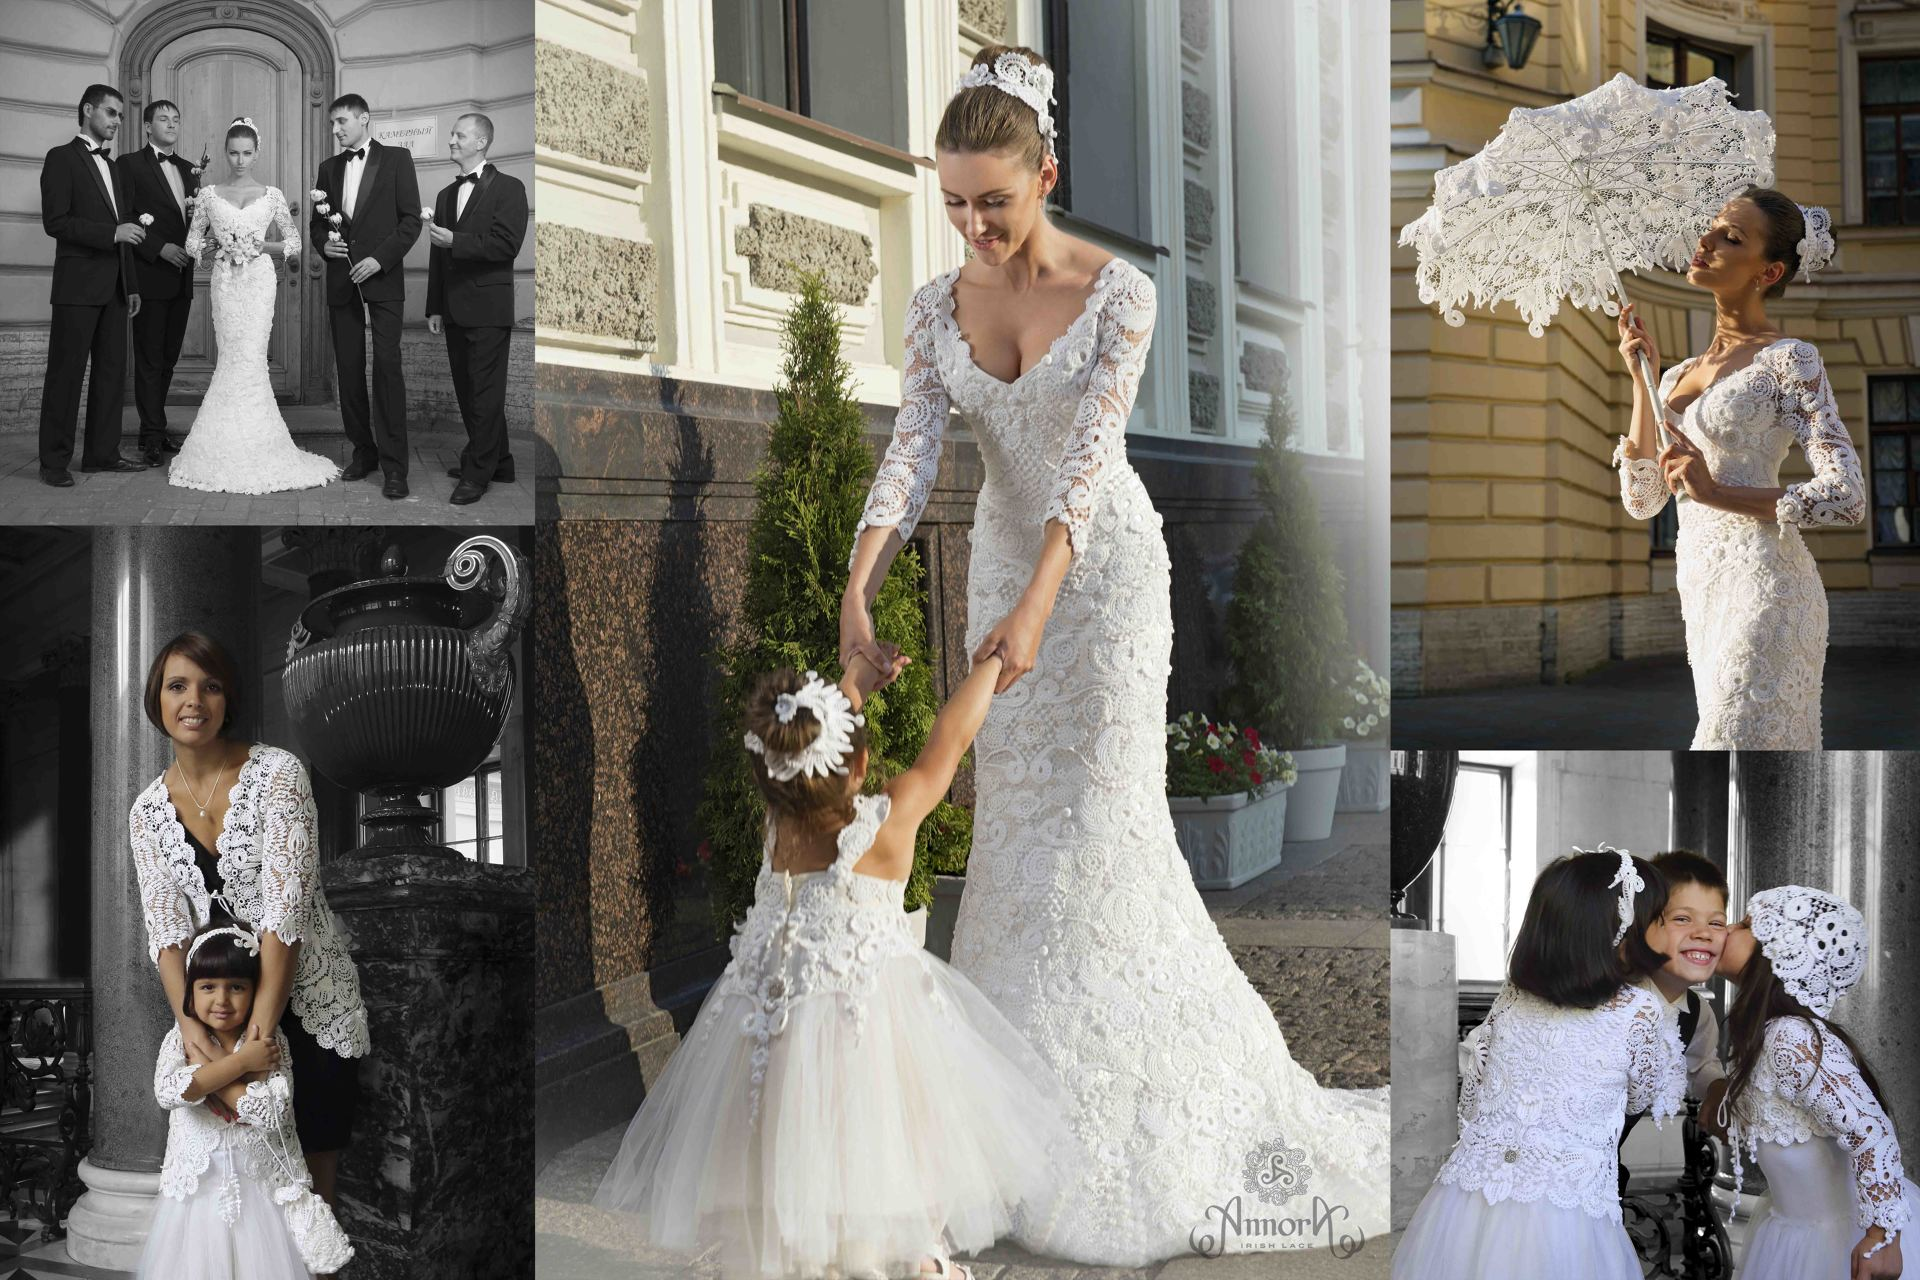 Annora Irish Lace collection: wedding dress, jacket and accessories made of handcrafted Irish Lace